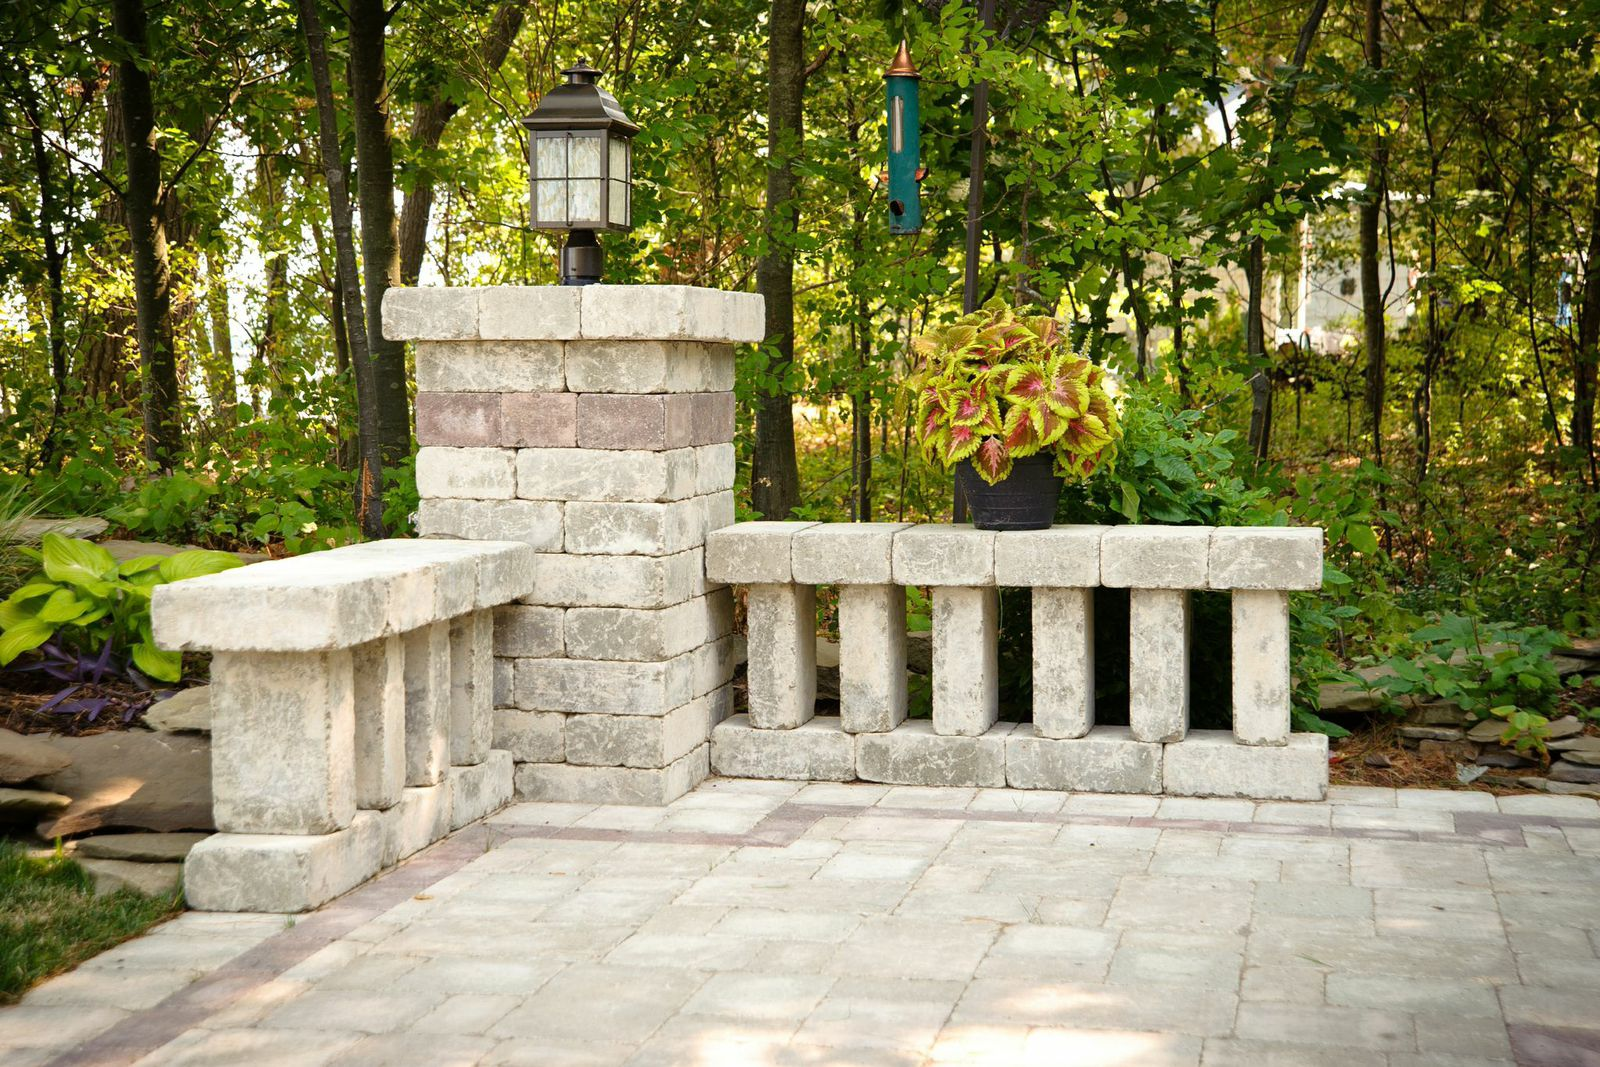 Brick Paver Accent and Outdoor Lighting